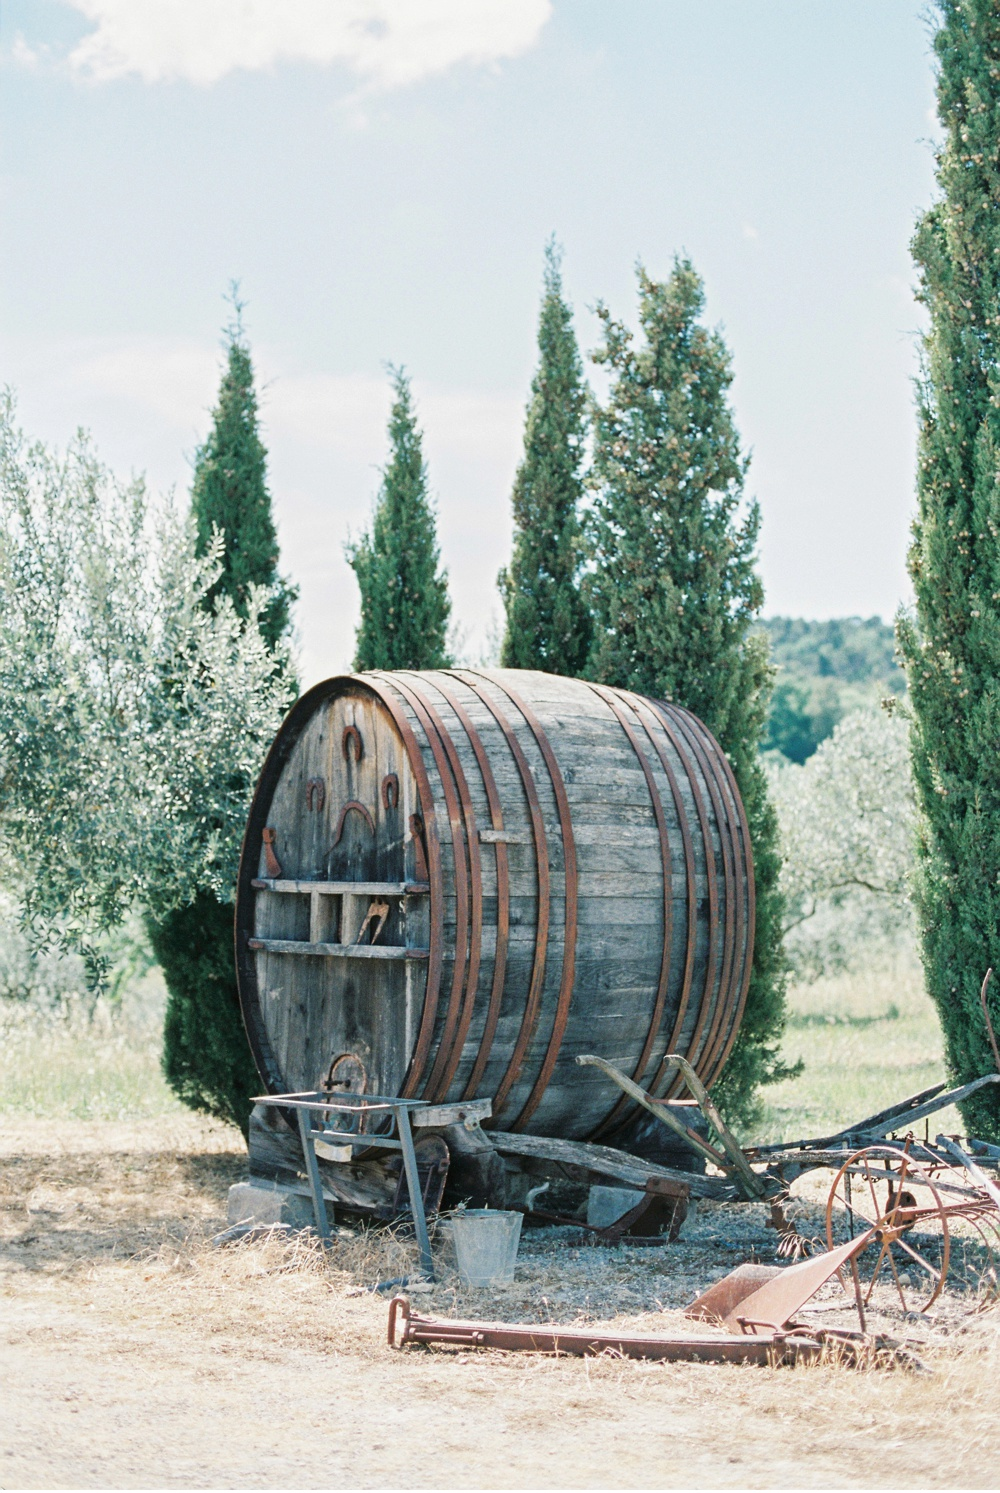 Provence_France_WeddingPhotographer©MadalinaSheldon_0070.jpg